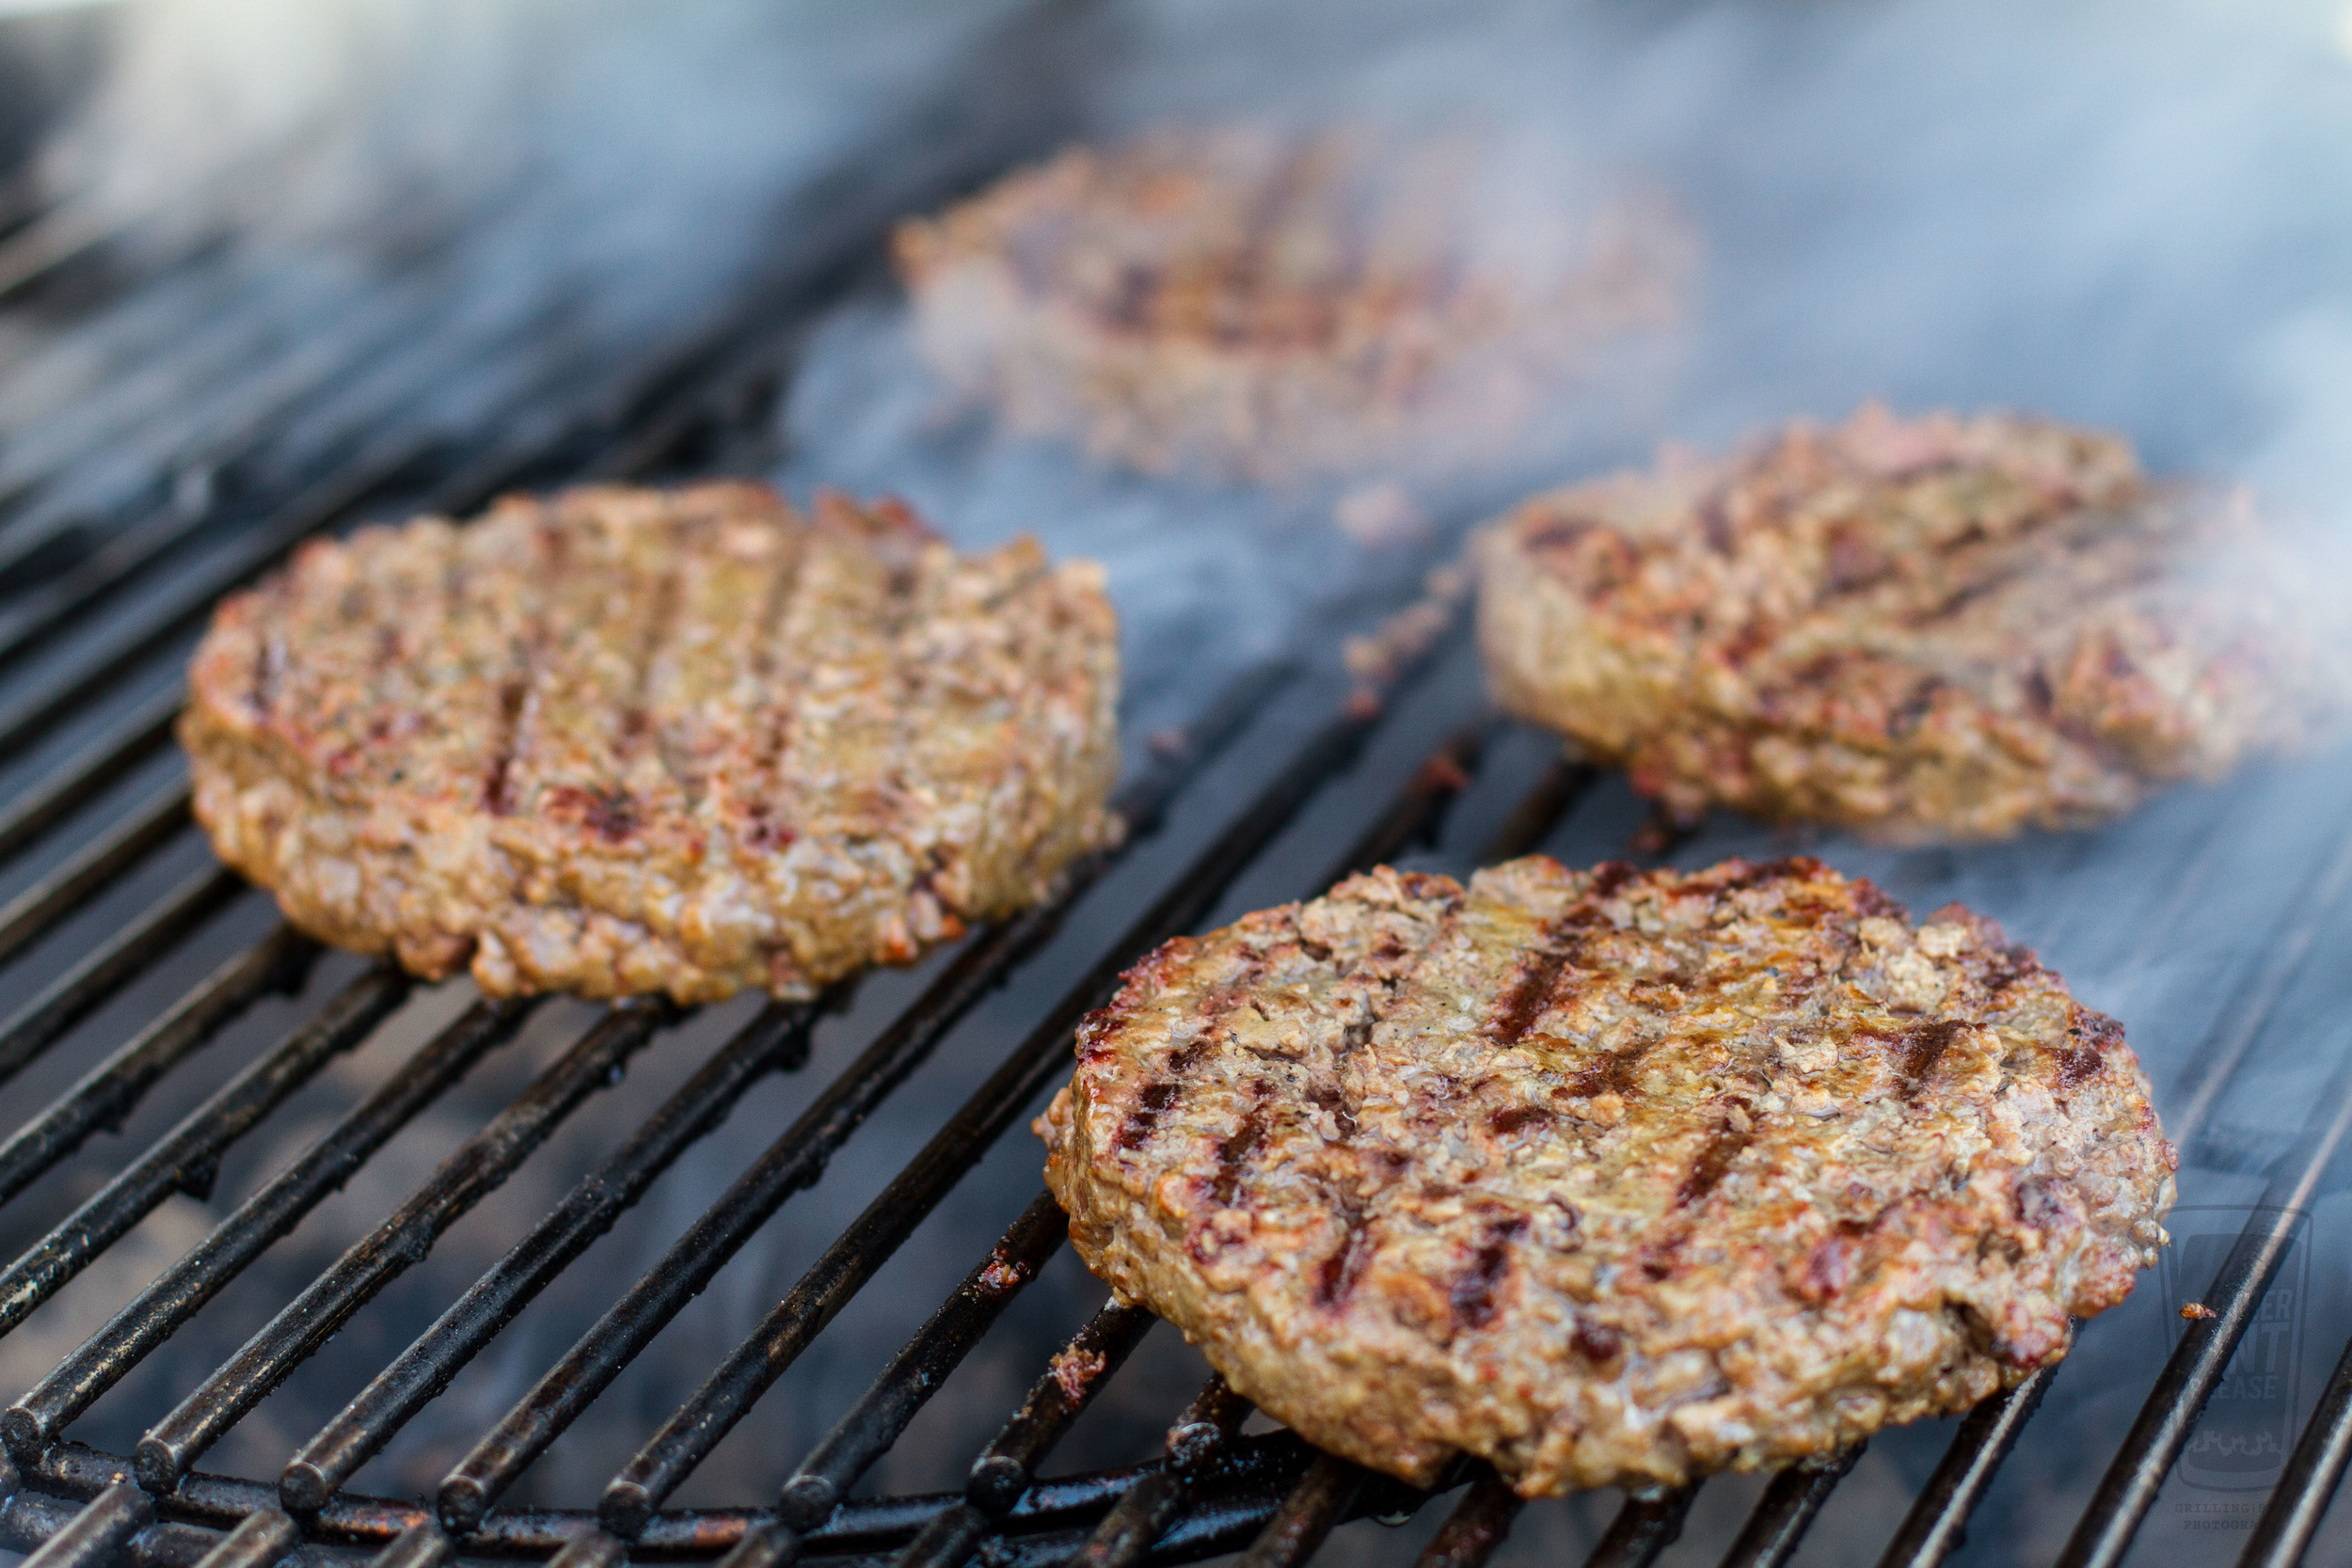 hamburgers on weber grill.jpg